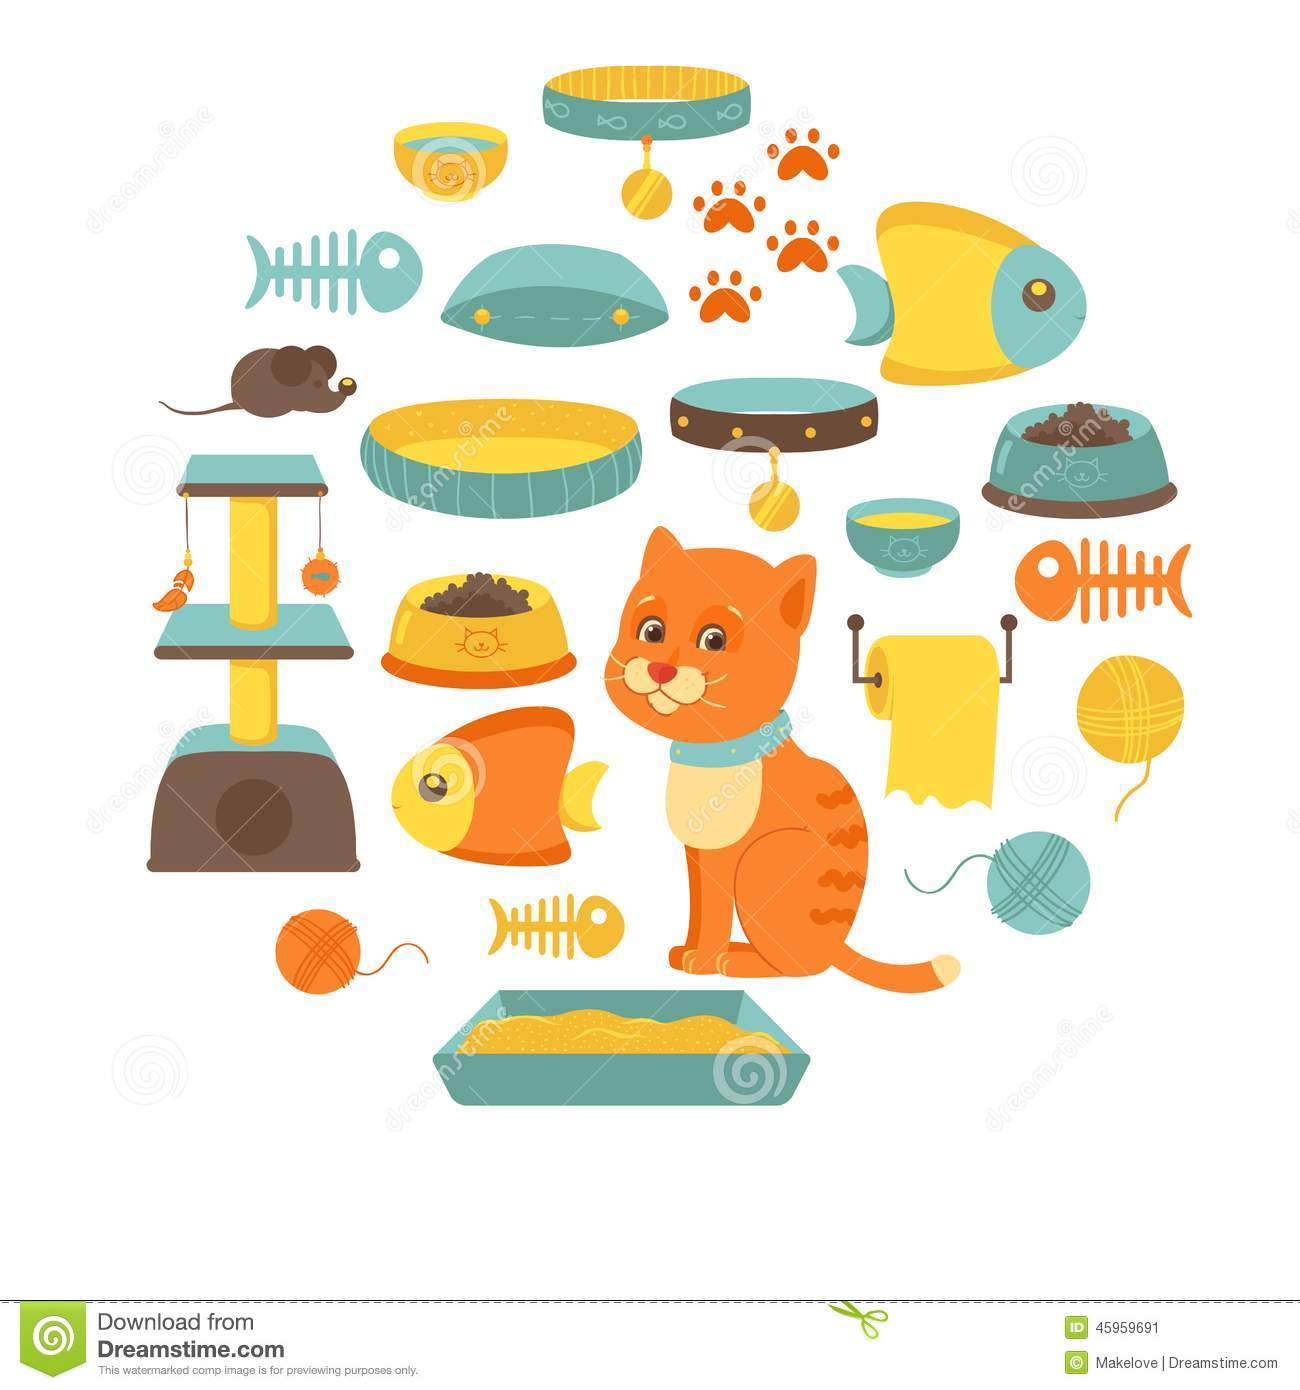 Toy Food Clip Art : Cat stuff collection toys food stock vector